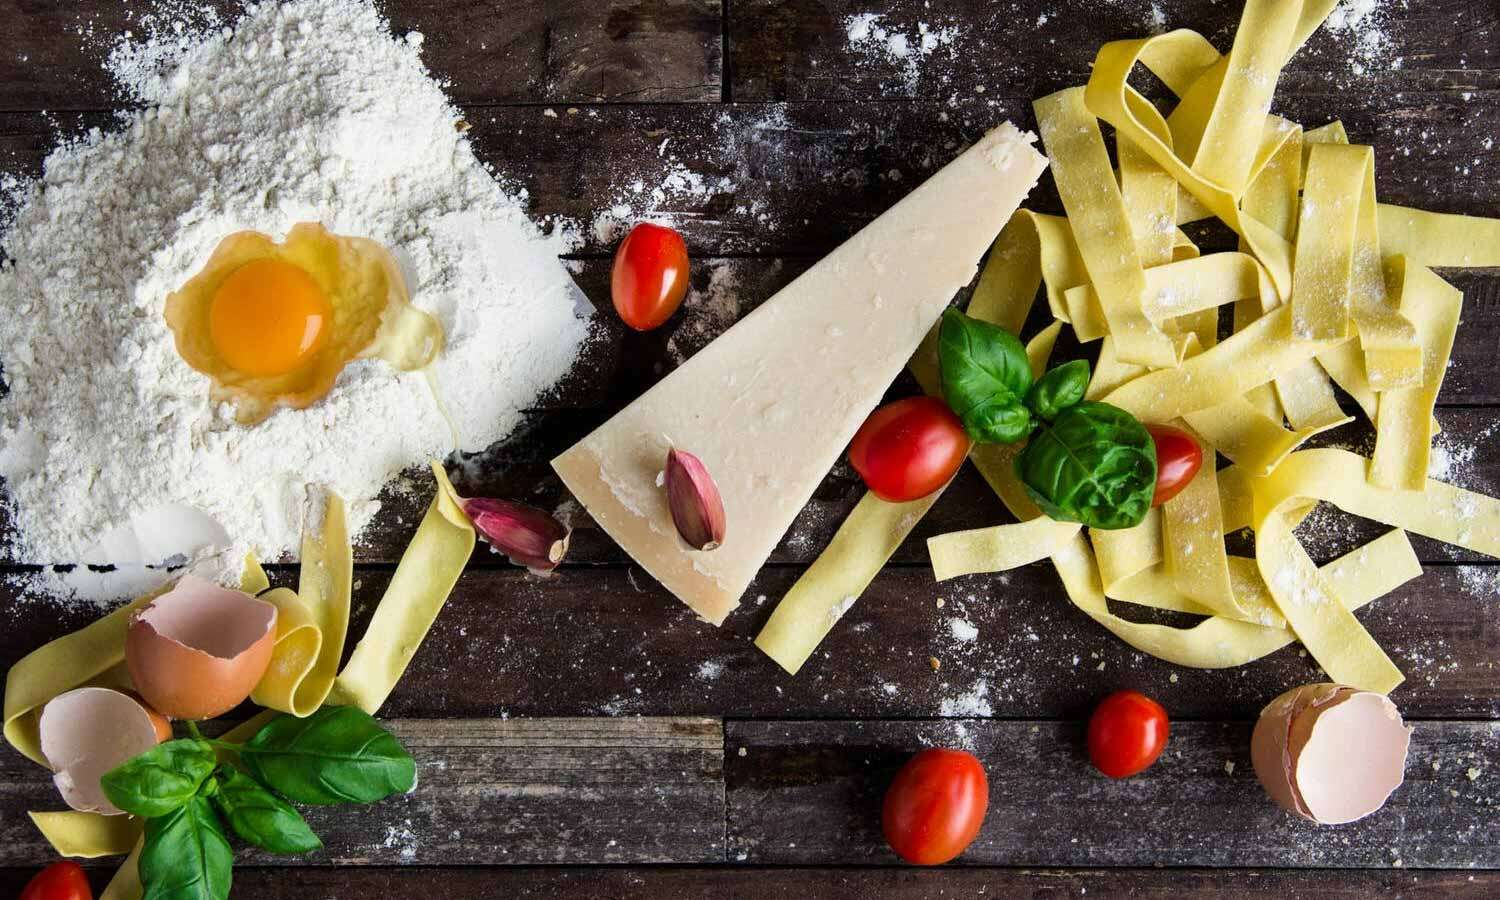 Guide to the Best Italian Cuisine by City or Region